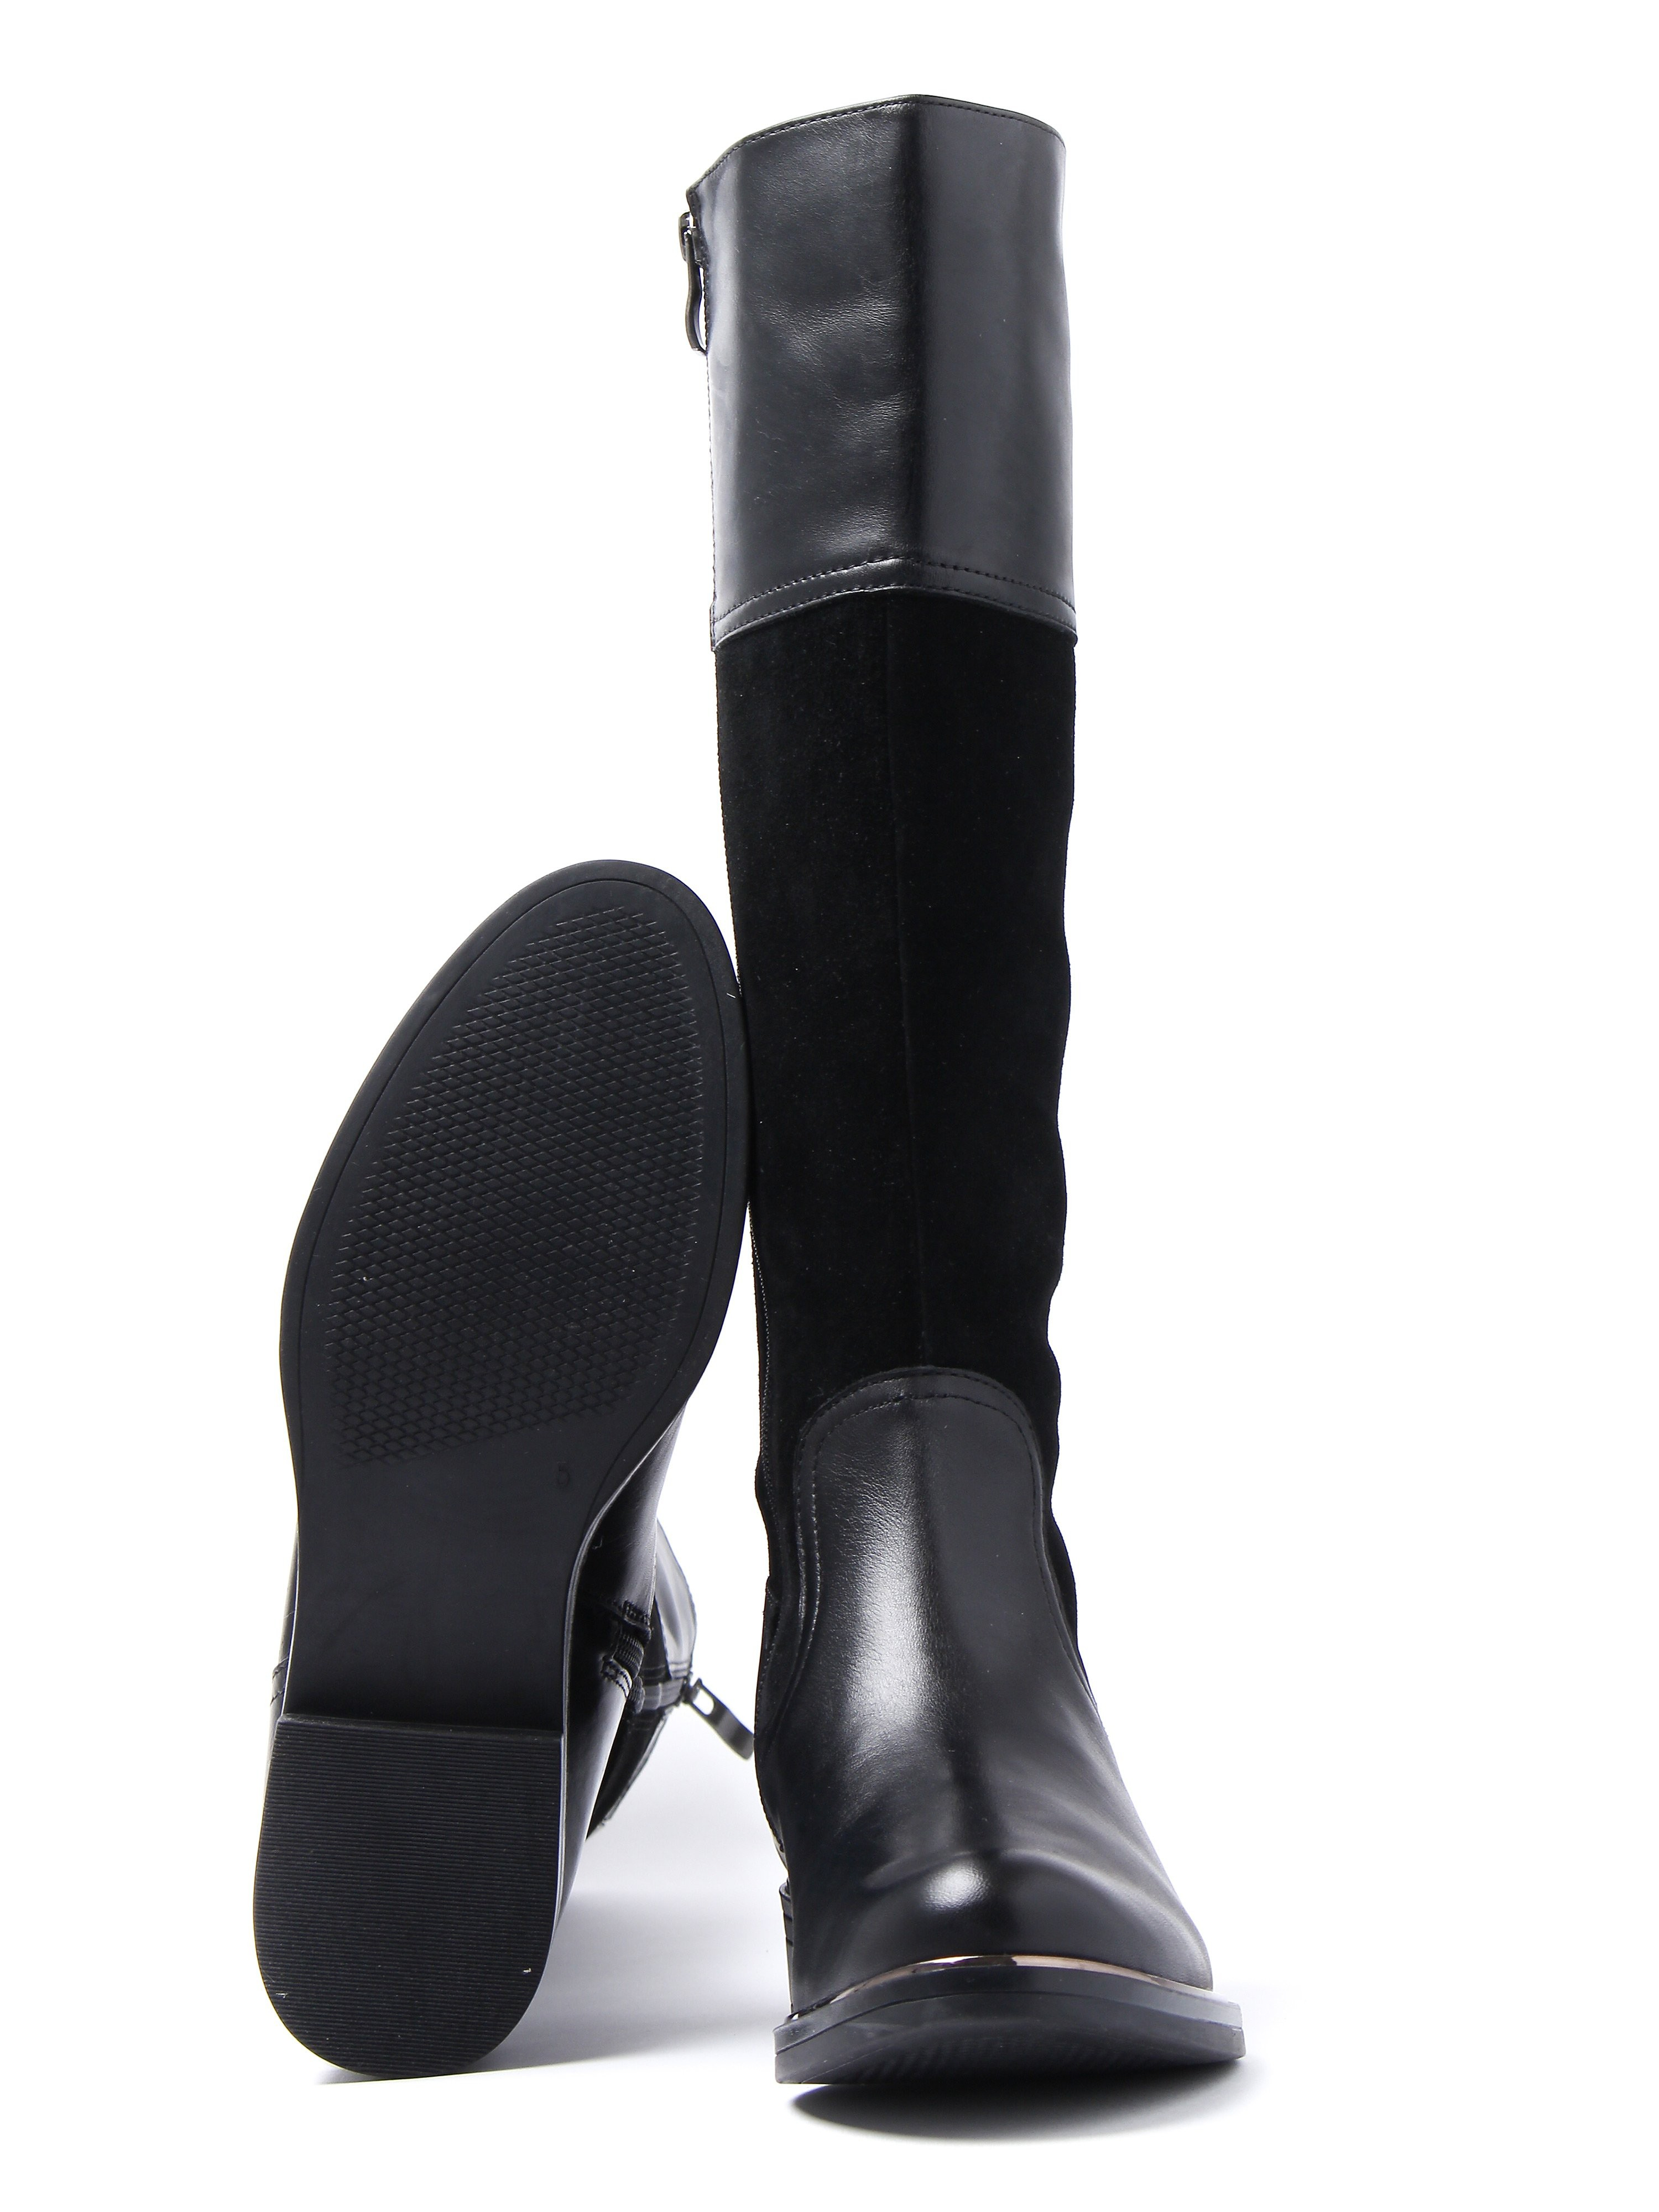 Caprice Women's Tall Combi Boots - Black Suede